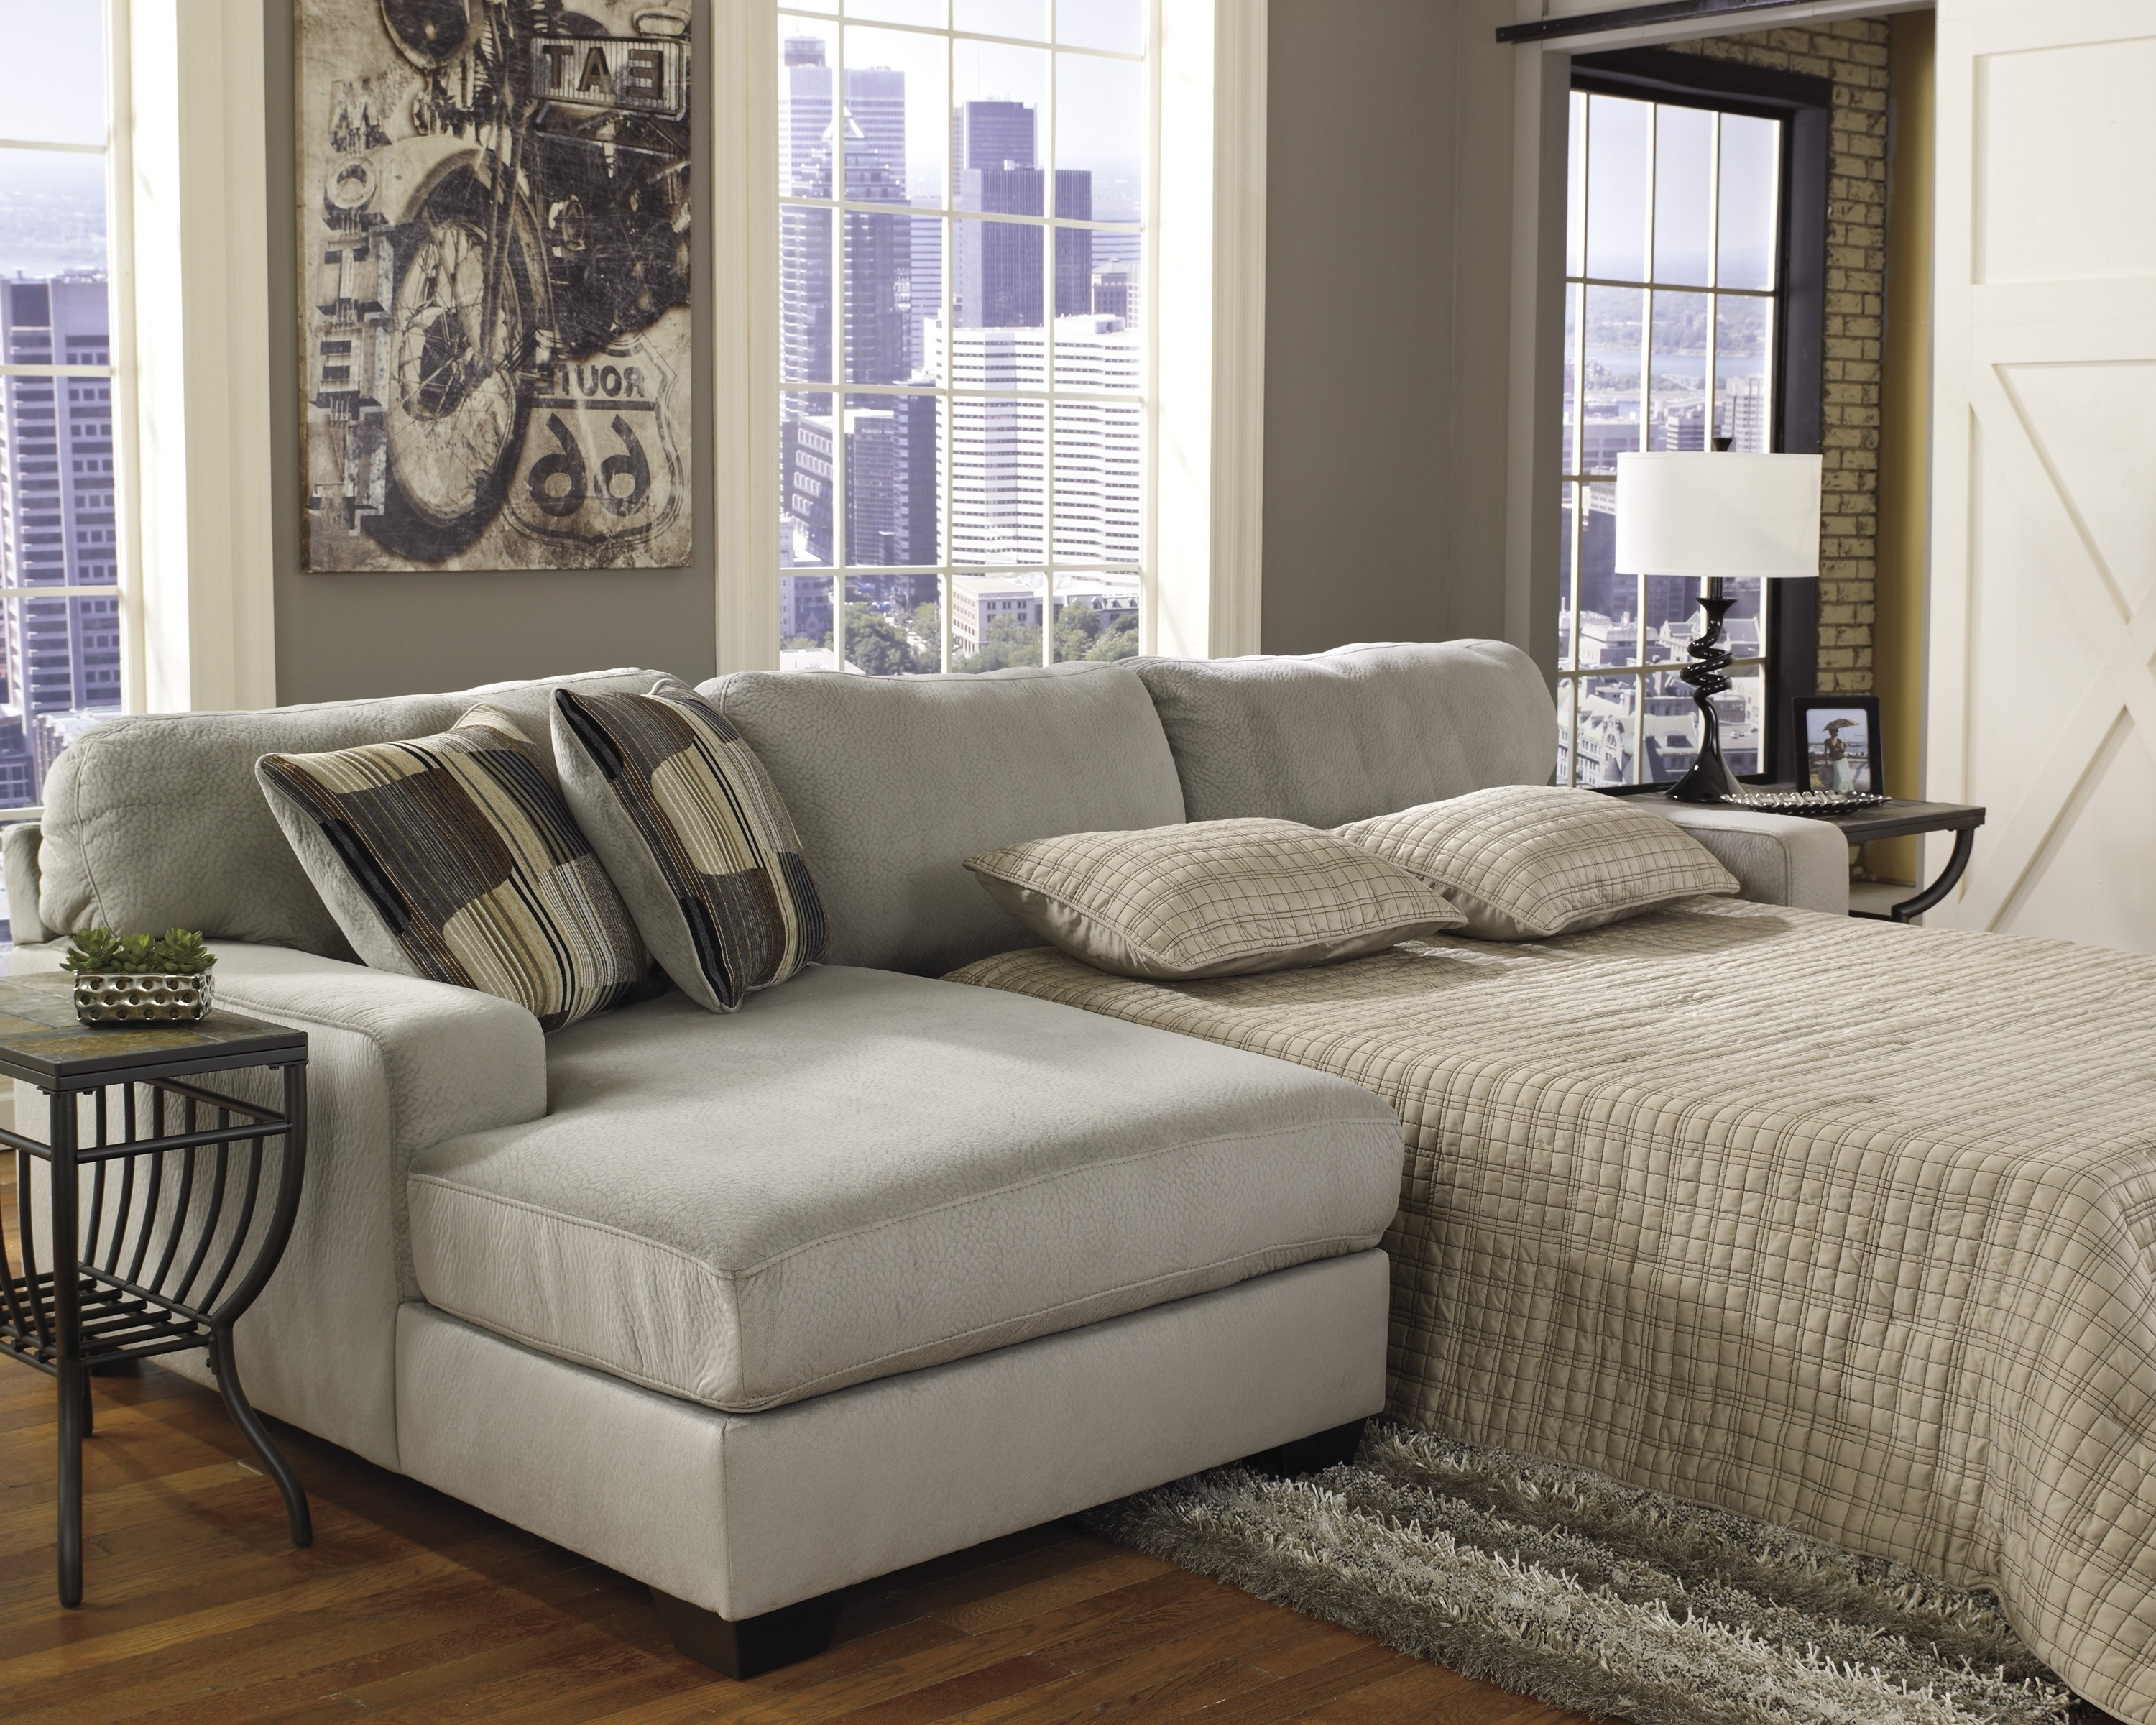 Outstanding Reclining Loveseat Set Along With Black Lear Tufted Regarding Newest Sectional Sofas In Houston Tx (View 18 of 20)